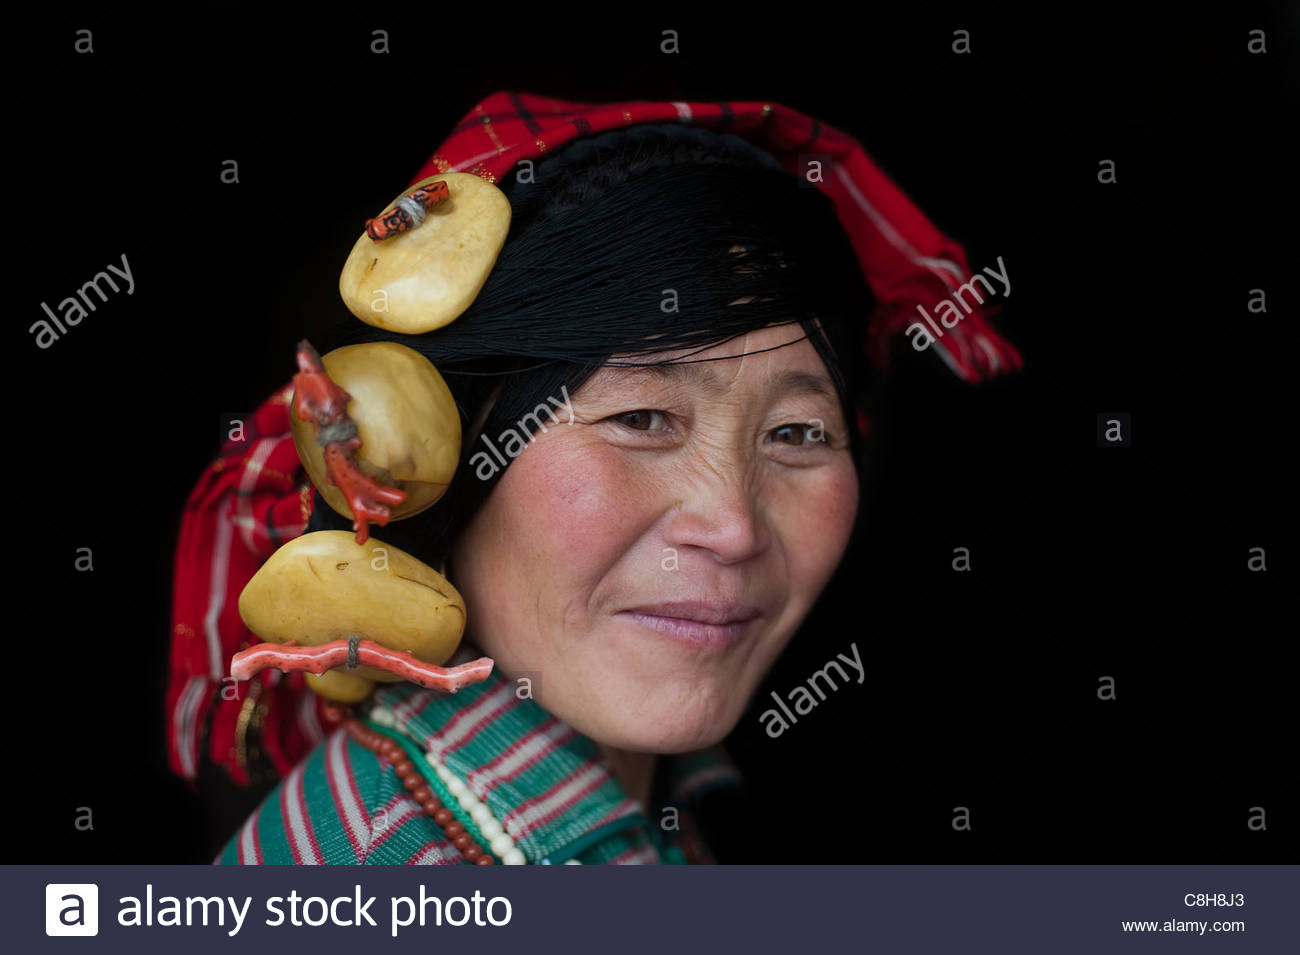 A Tibetan woman wearing traditional stone jewelry on her head. - Stock Image